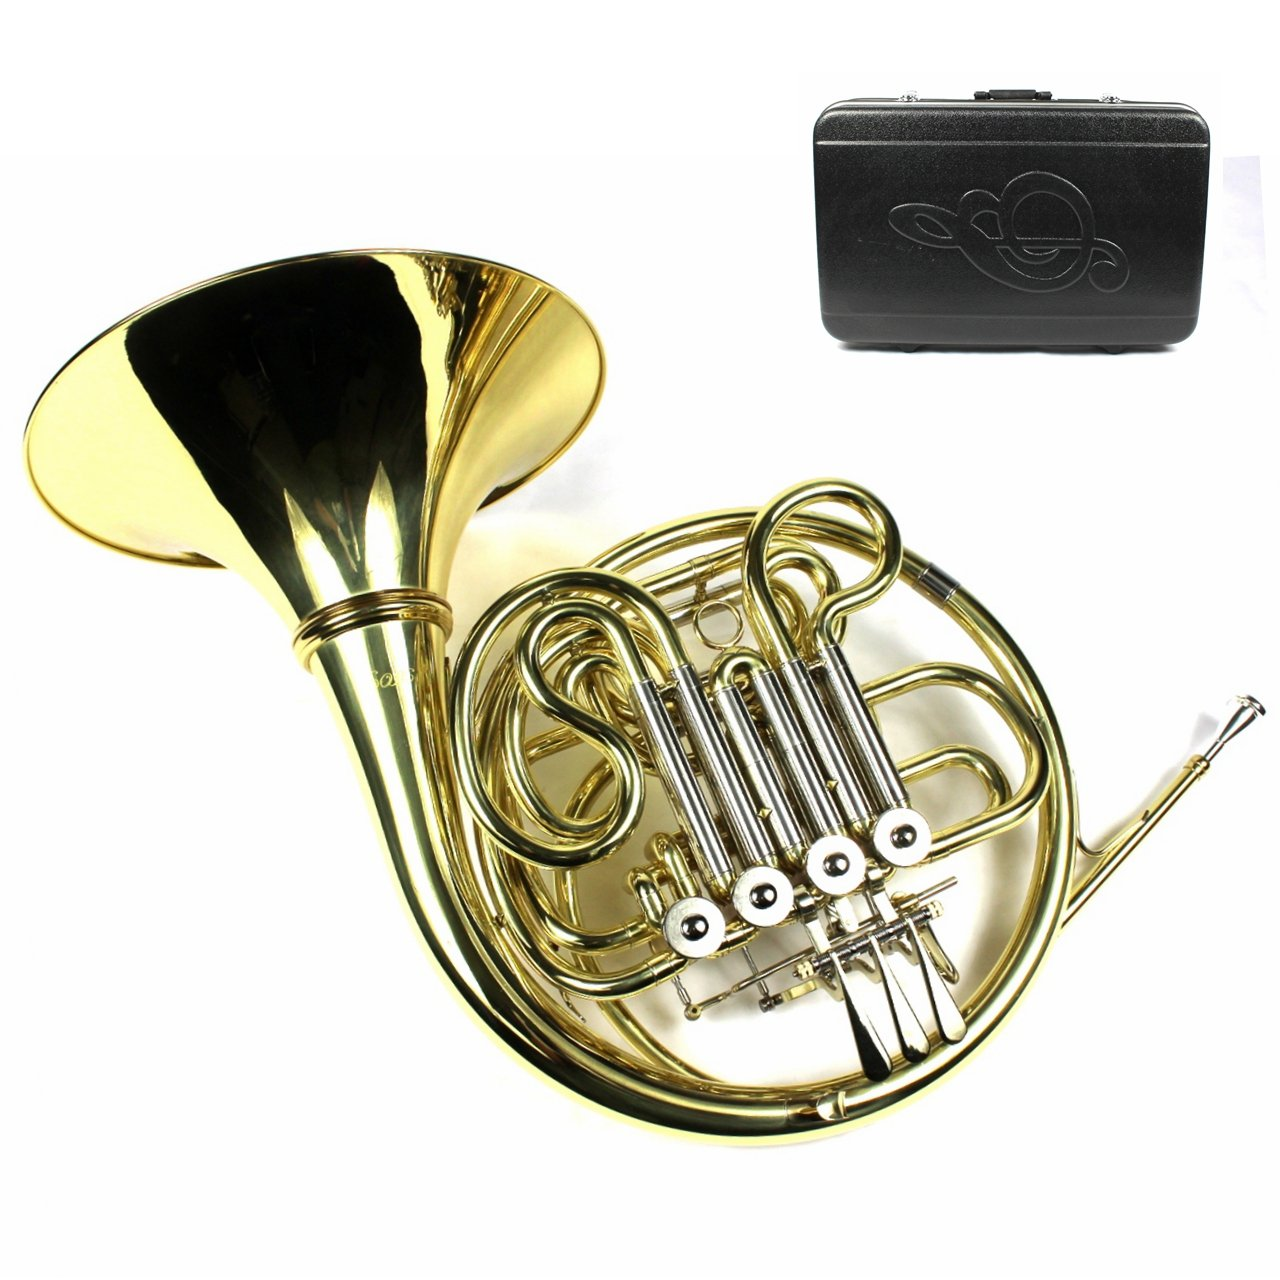 Monel Rotors Bb/F 4 Keys Double French Horn w/Case & Mouthpiece-Gold Lacquer Finish professional new silver plated trumpet bb keys with monel valves horn case